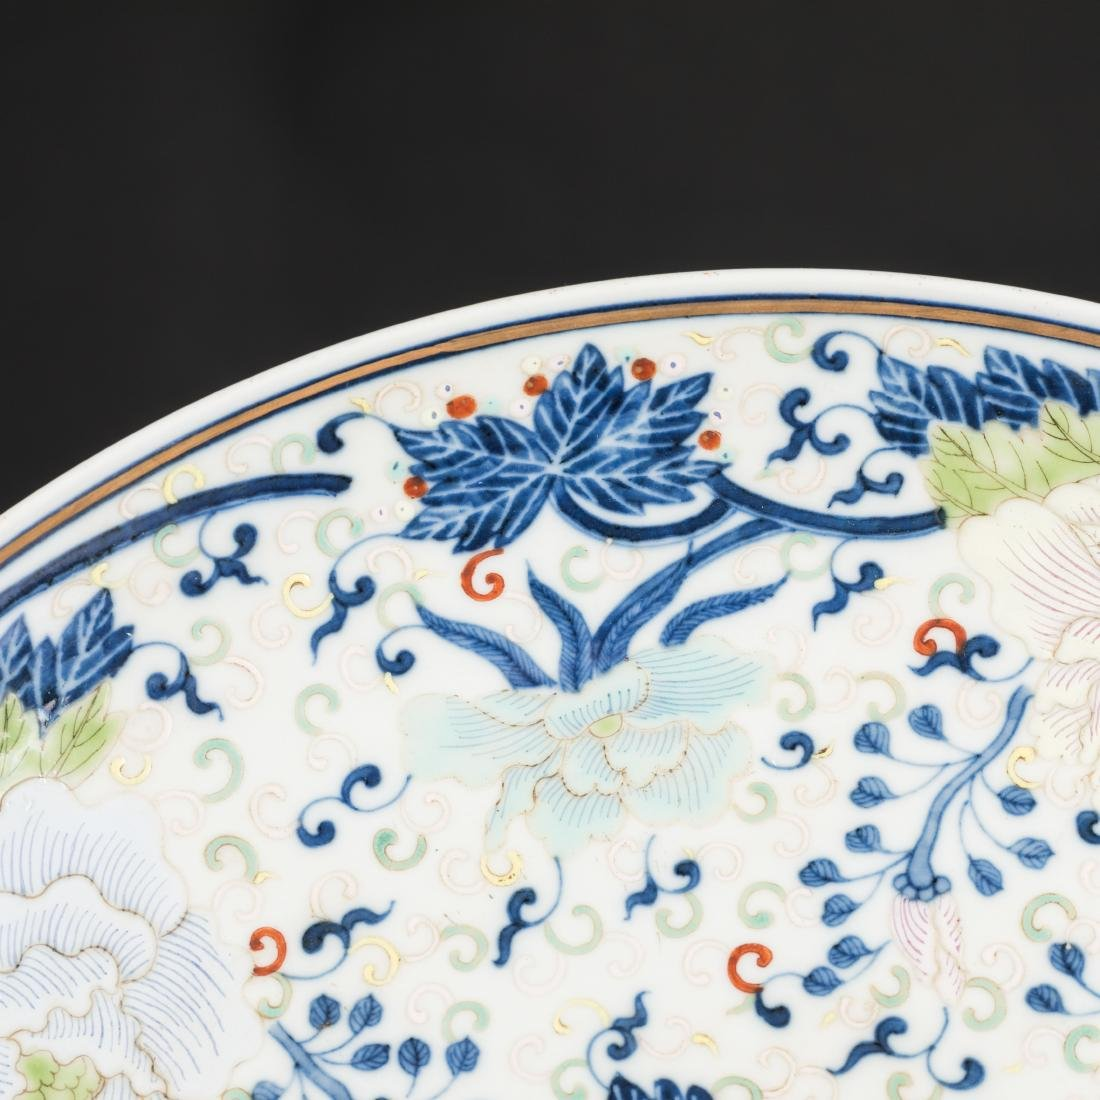 19th Antique Famille Rose Plate - 5